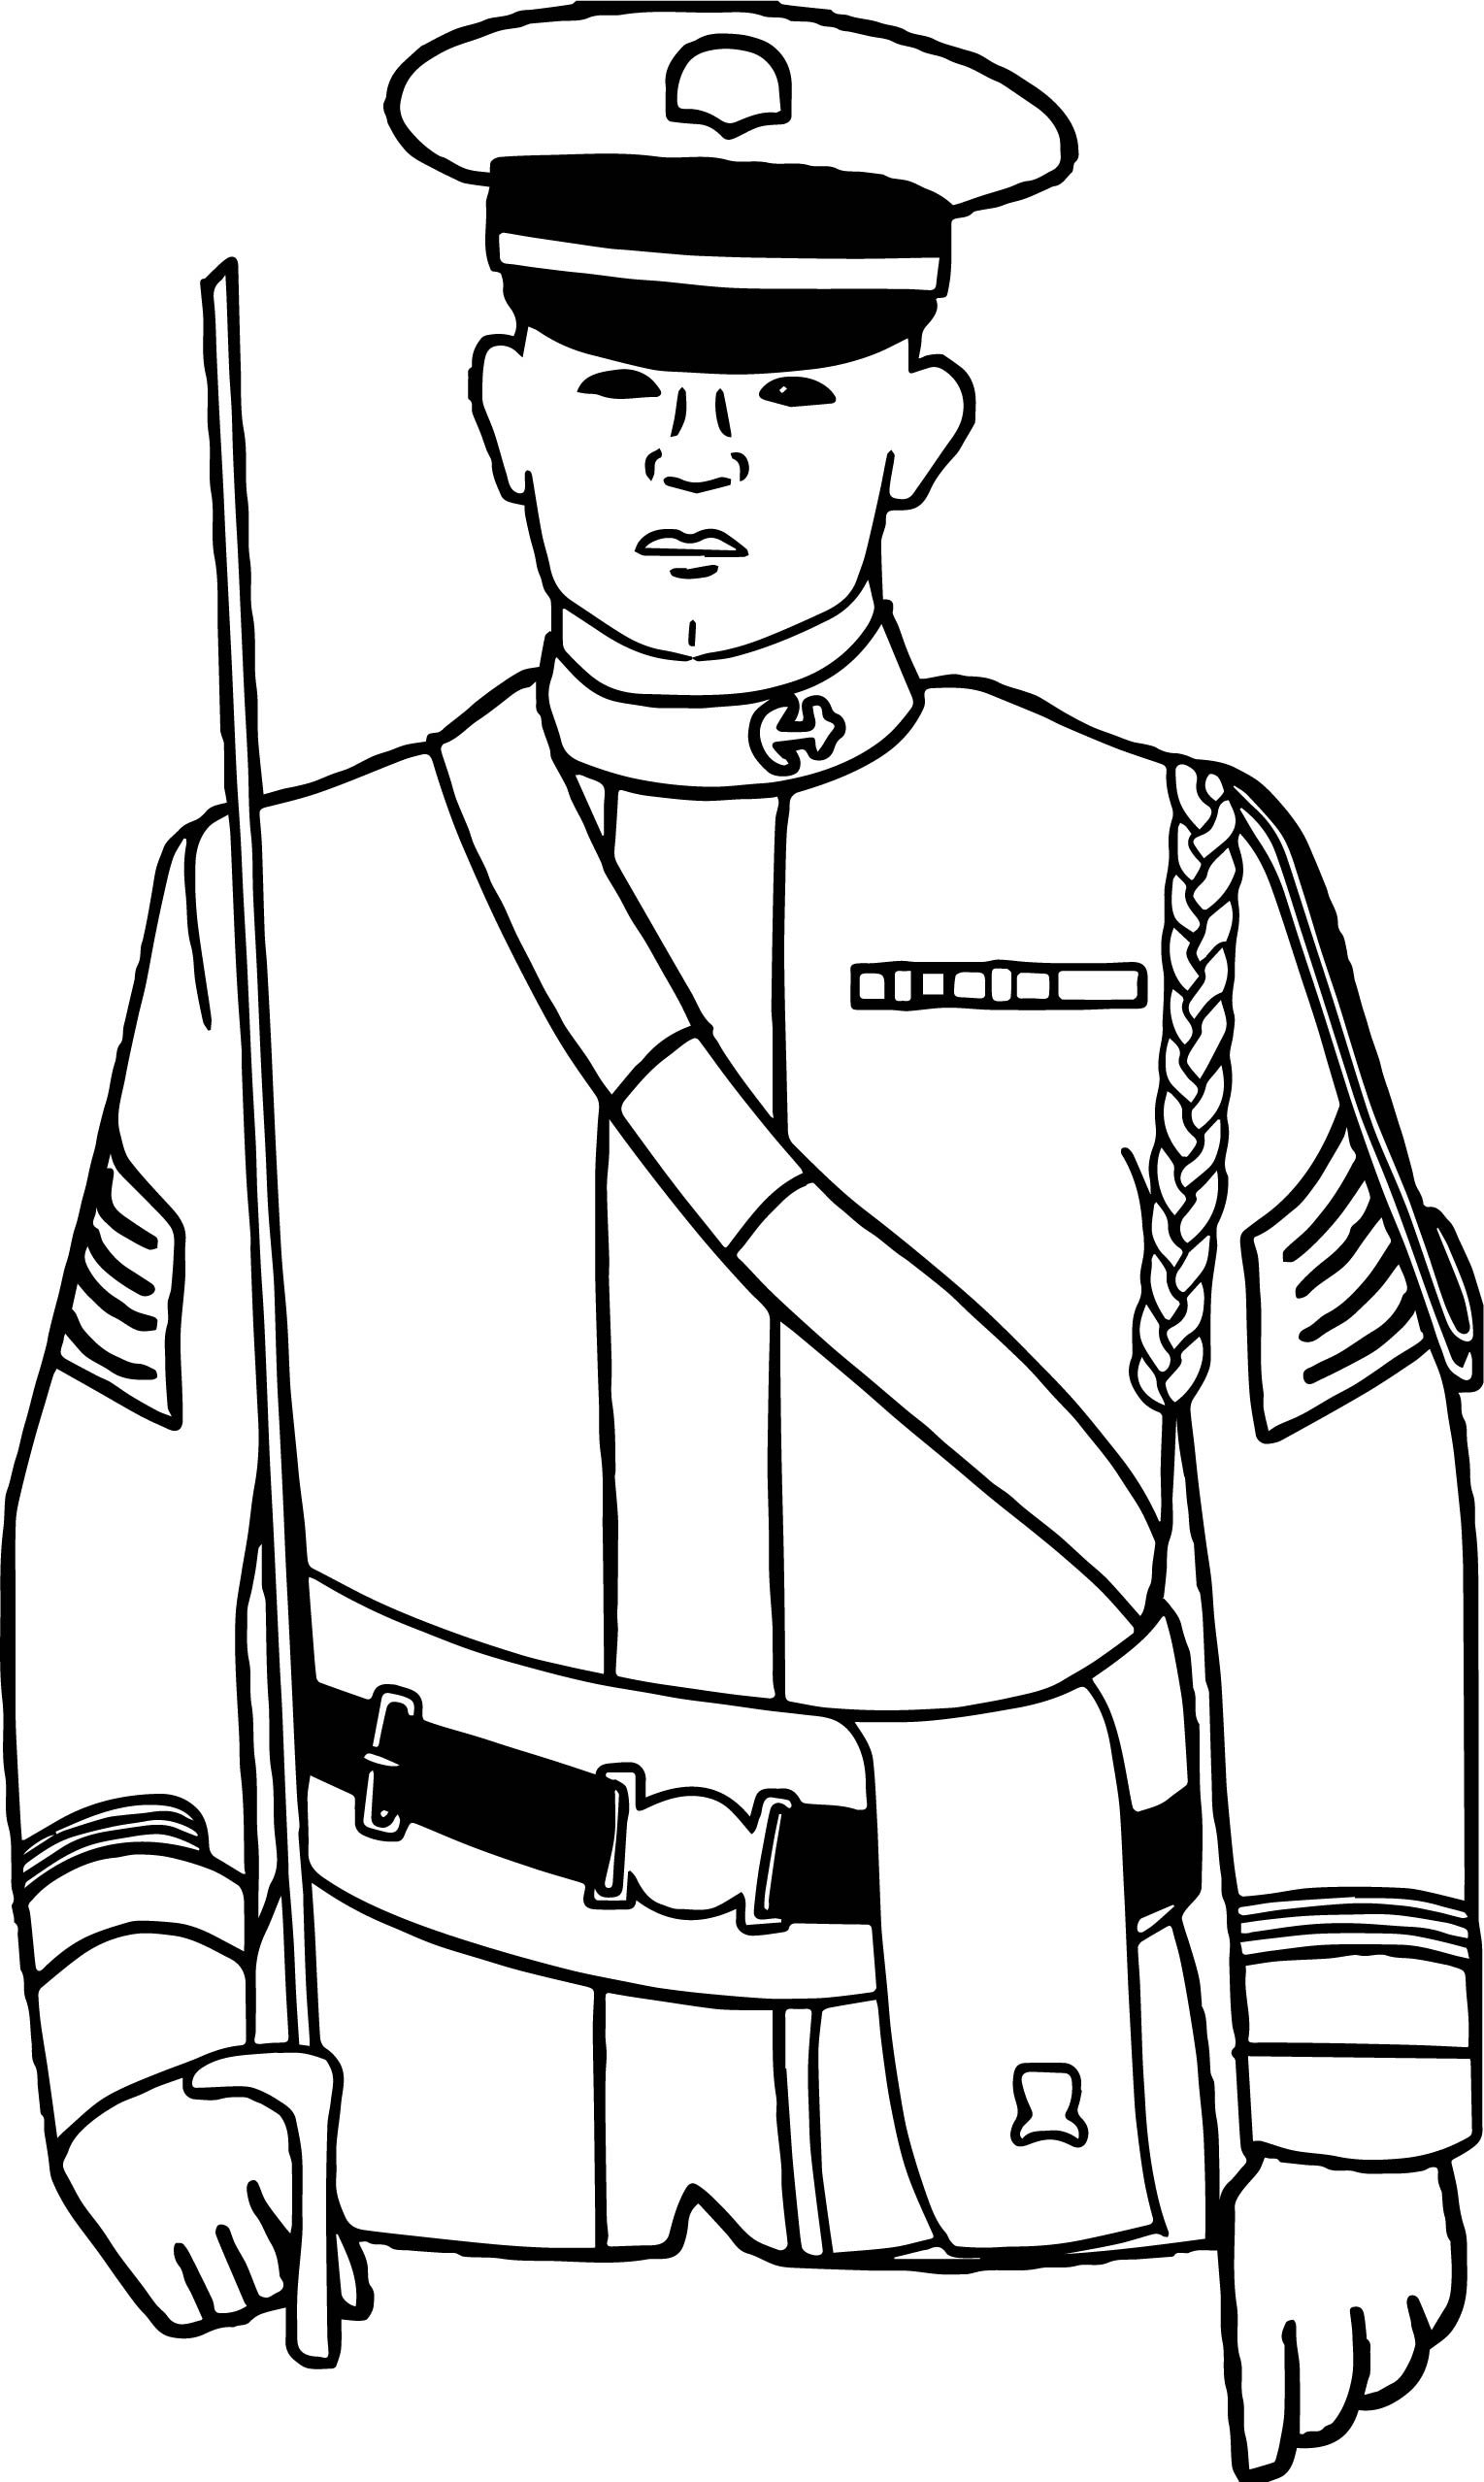 sailor soldier coloring page - Soldier Coloring Pages